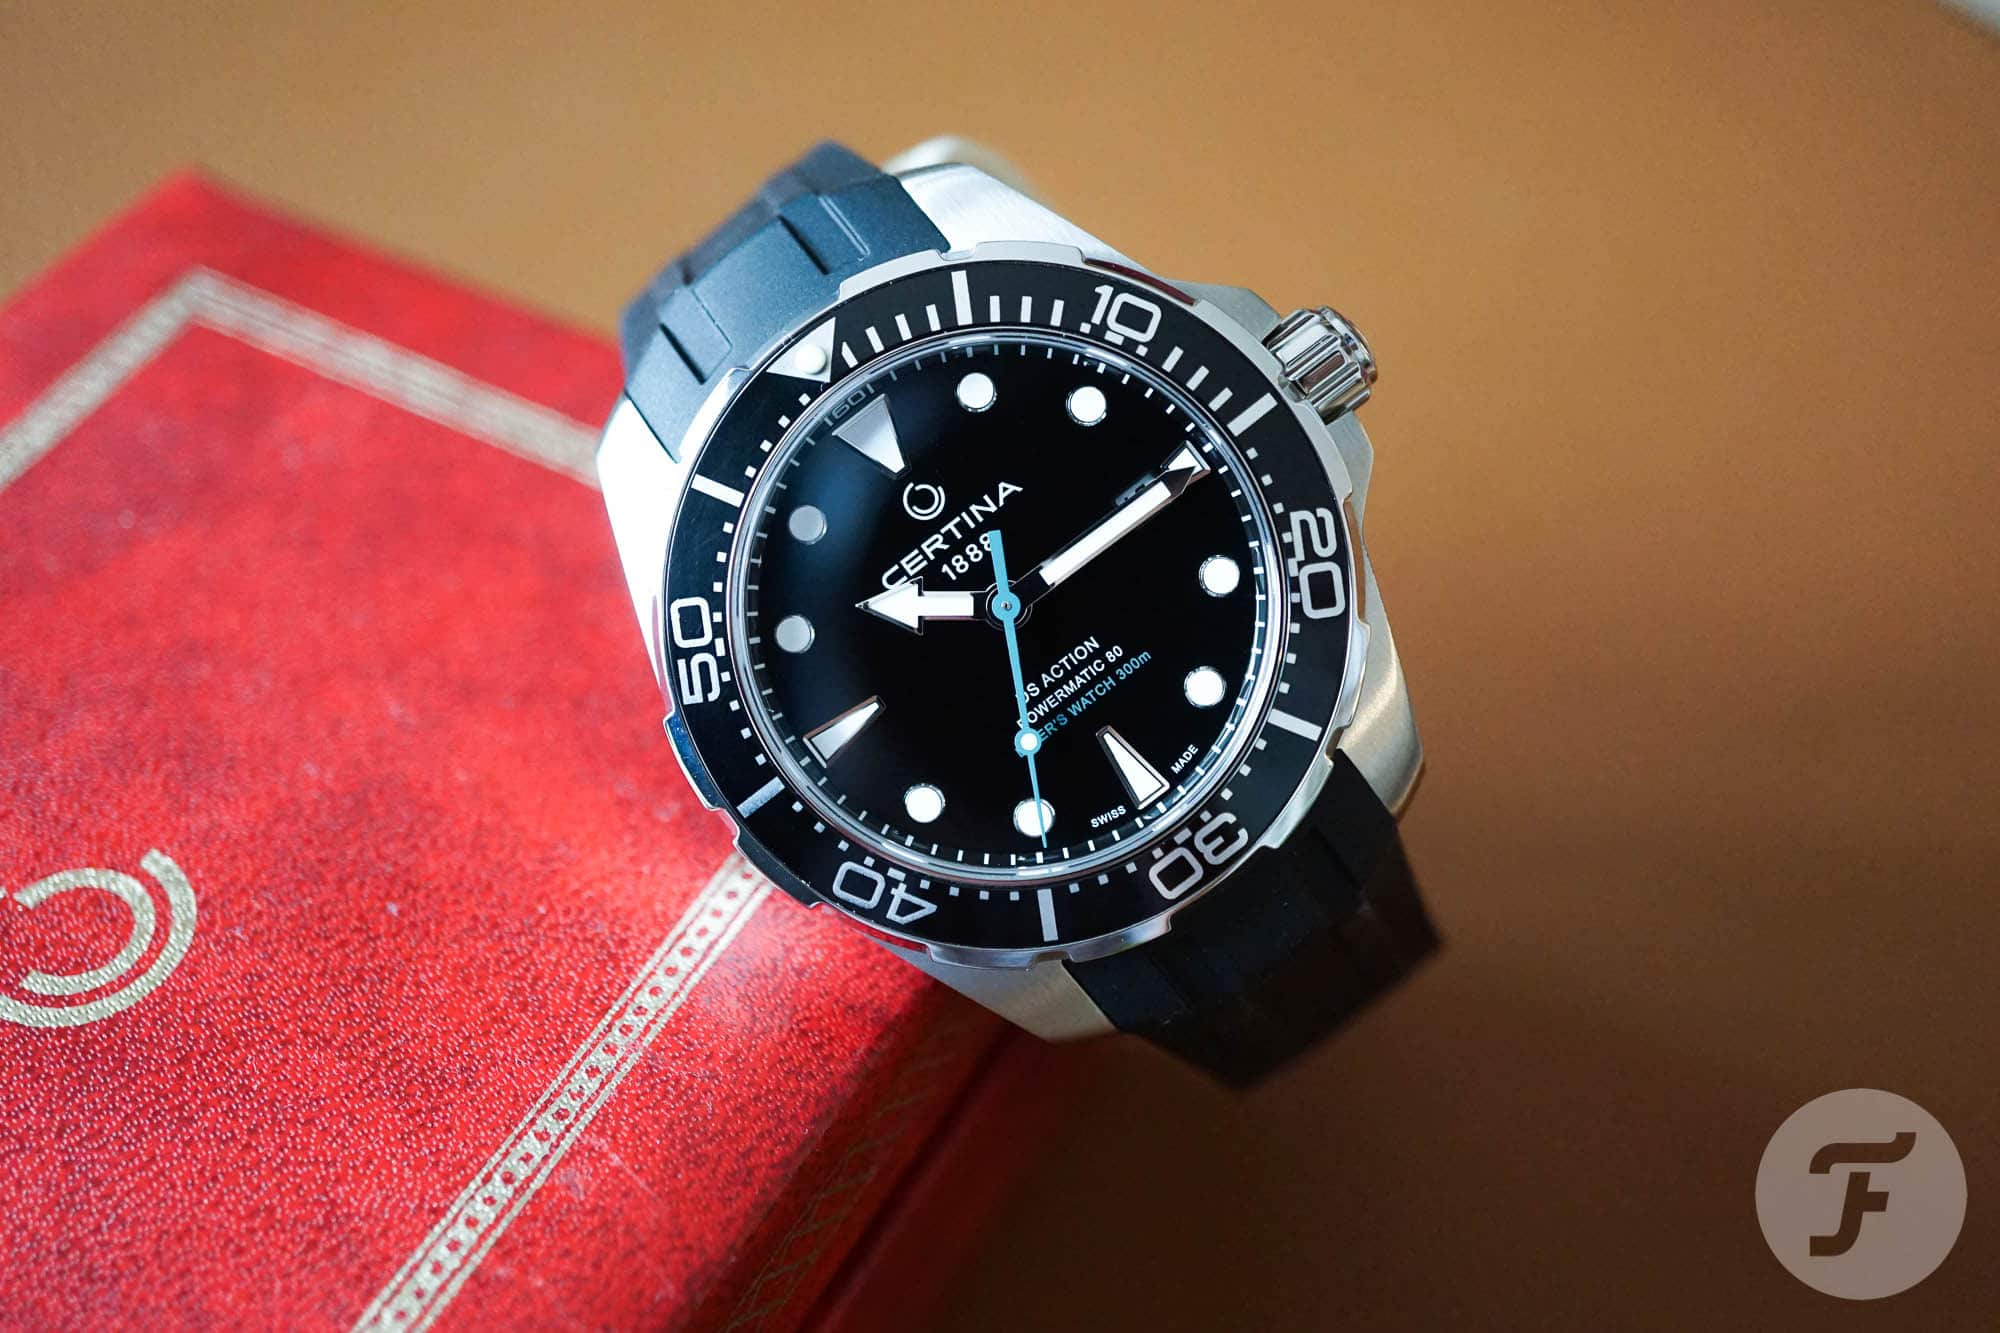 Hands-On: Certina DS Action Diver STC 60th Anniversary Review